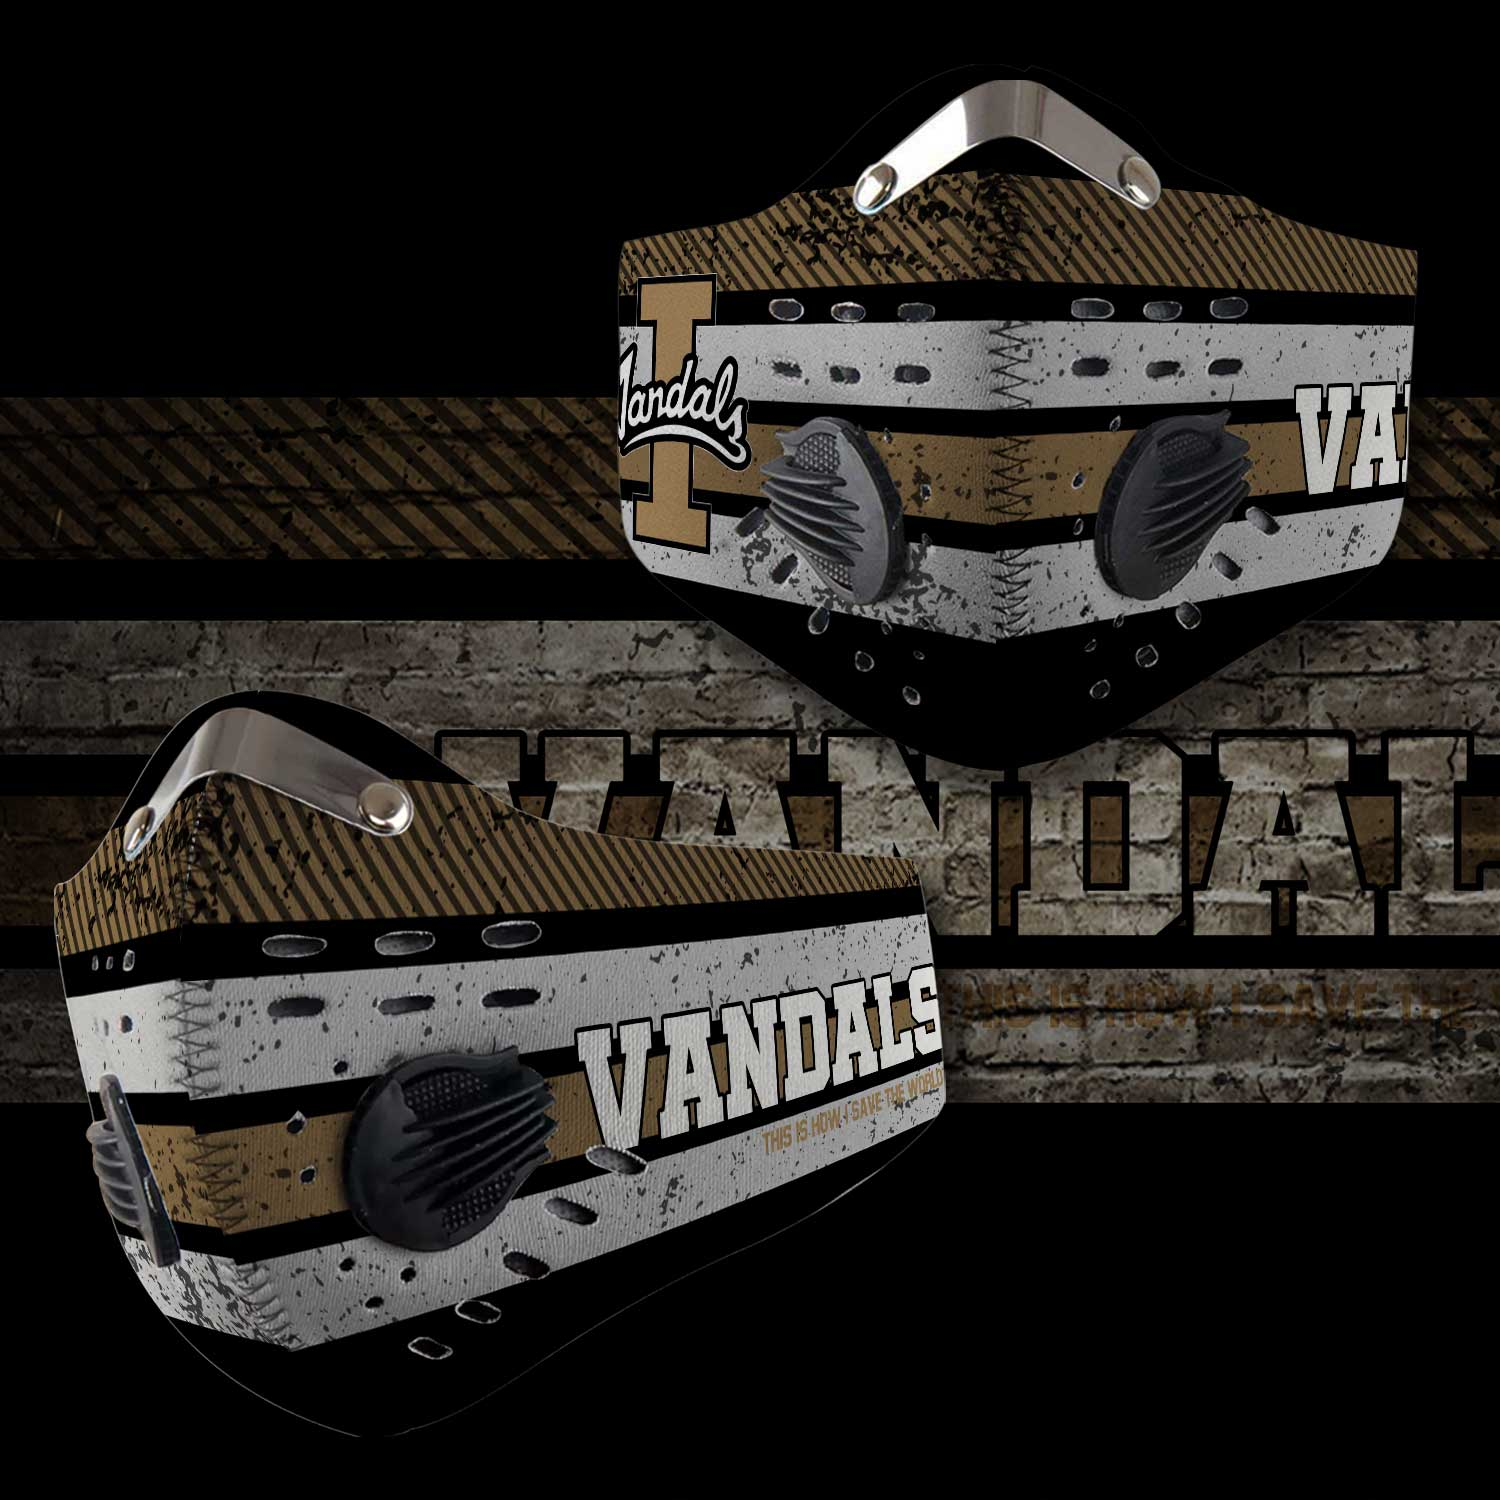 Idaho vandals football this is how i save the world face mask 2